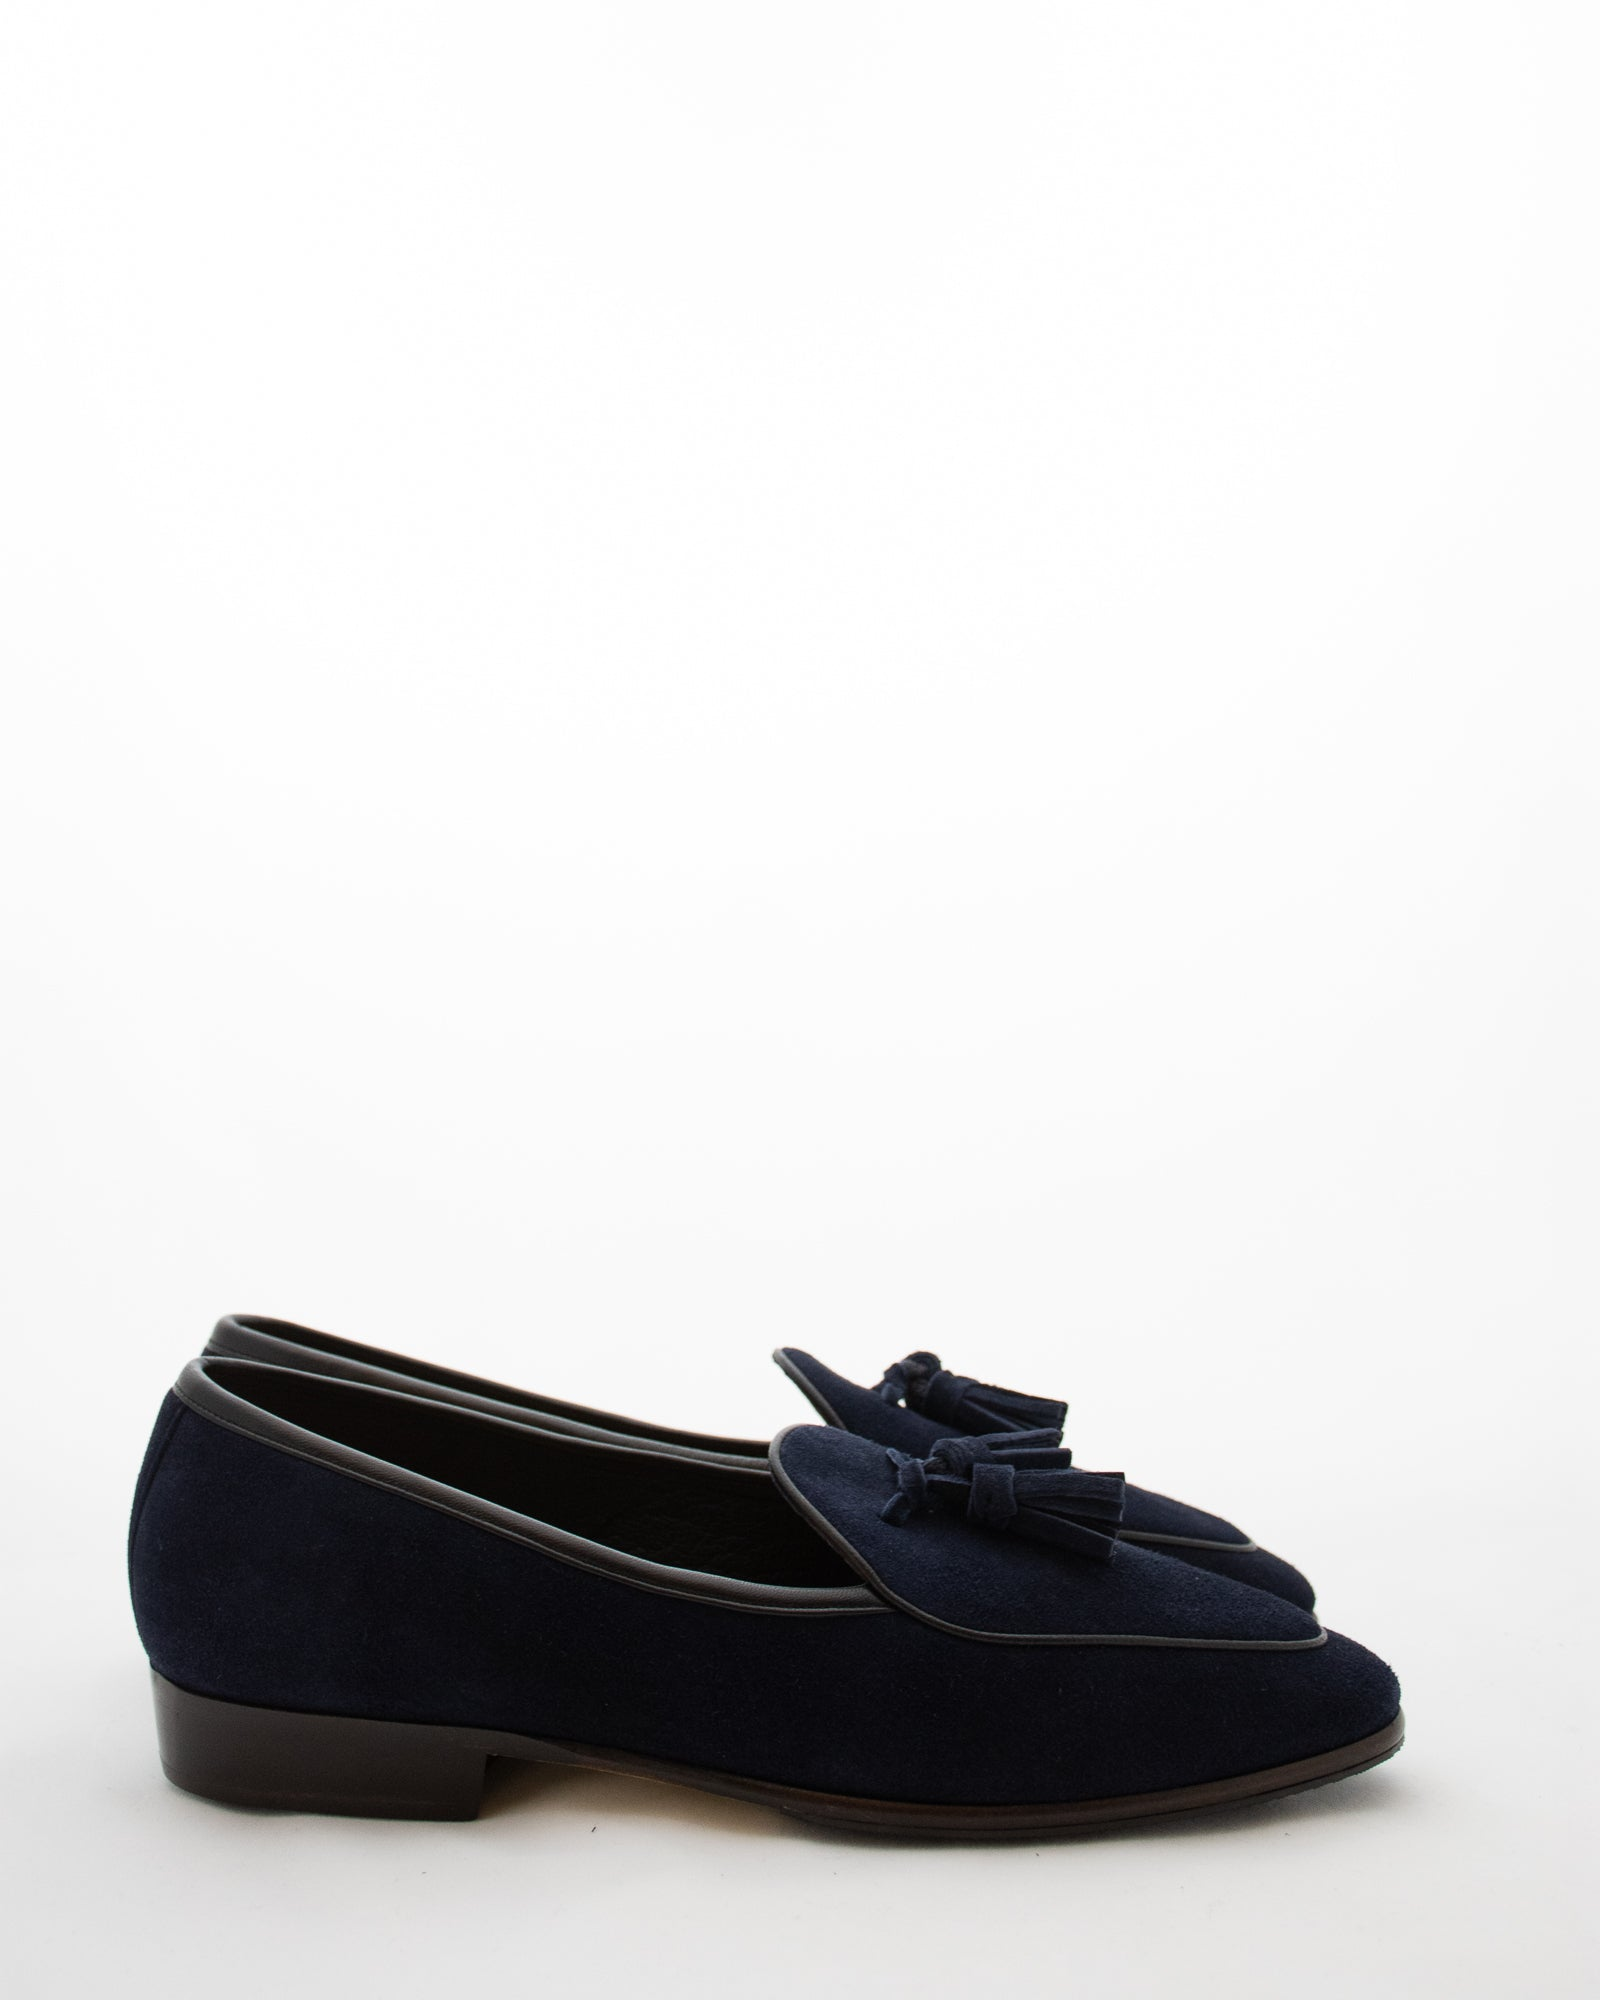 B&L Sagan Tassel Loafer